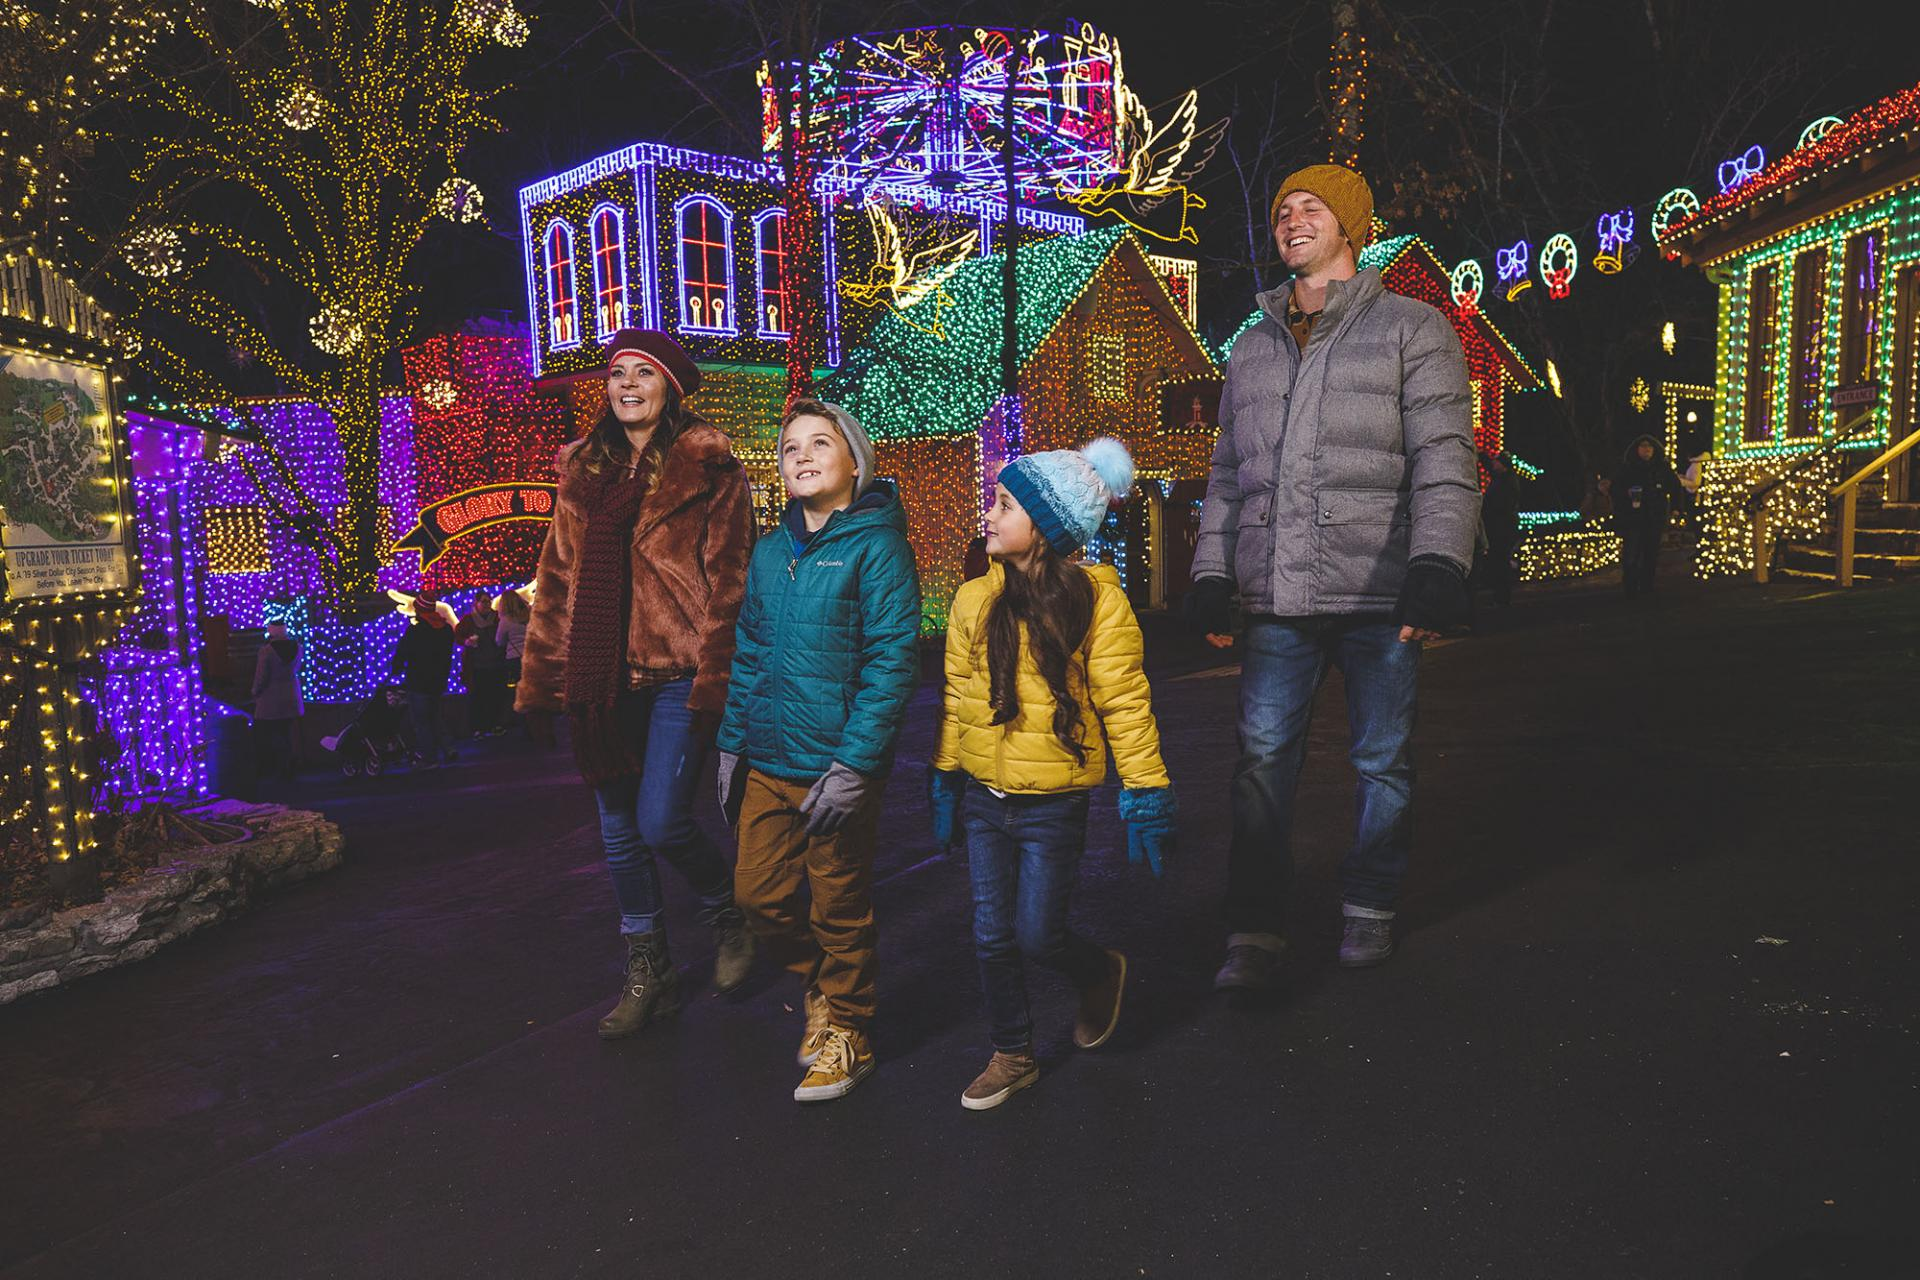 Young family walking through large Christmas light display at Silver Dollar City